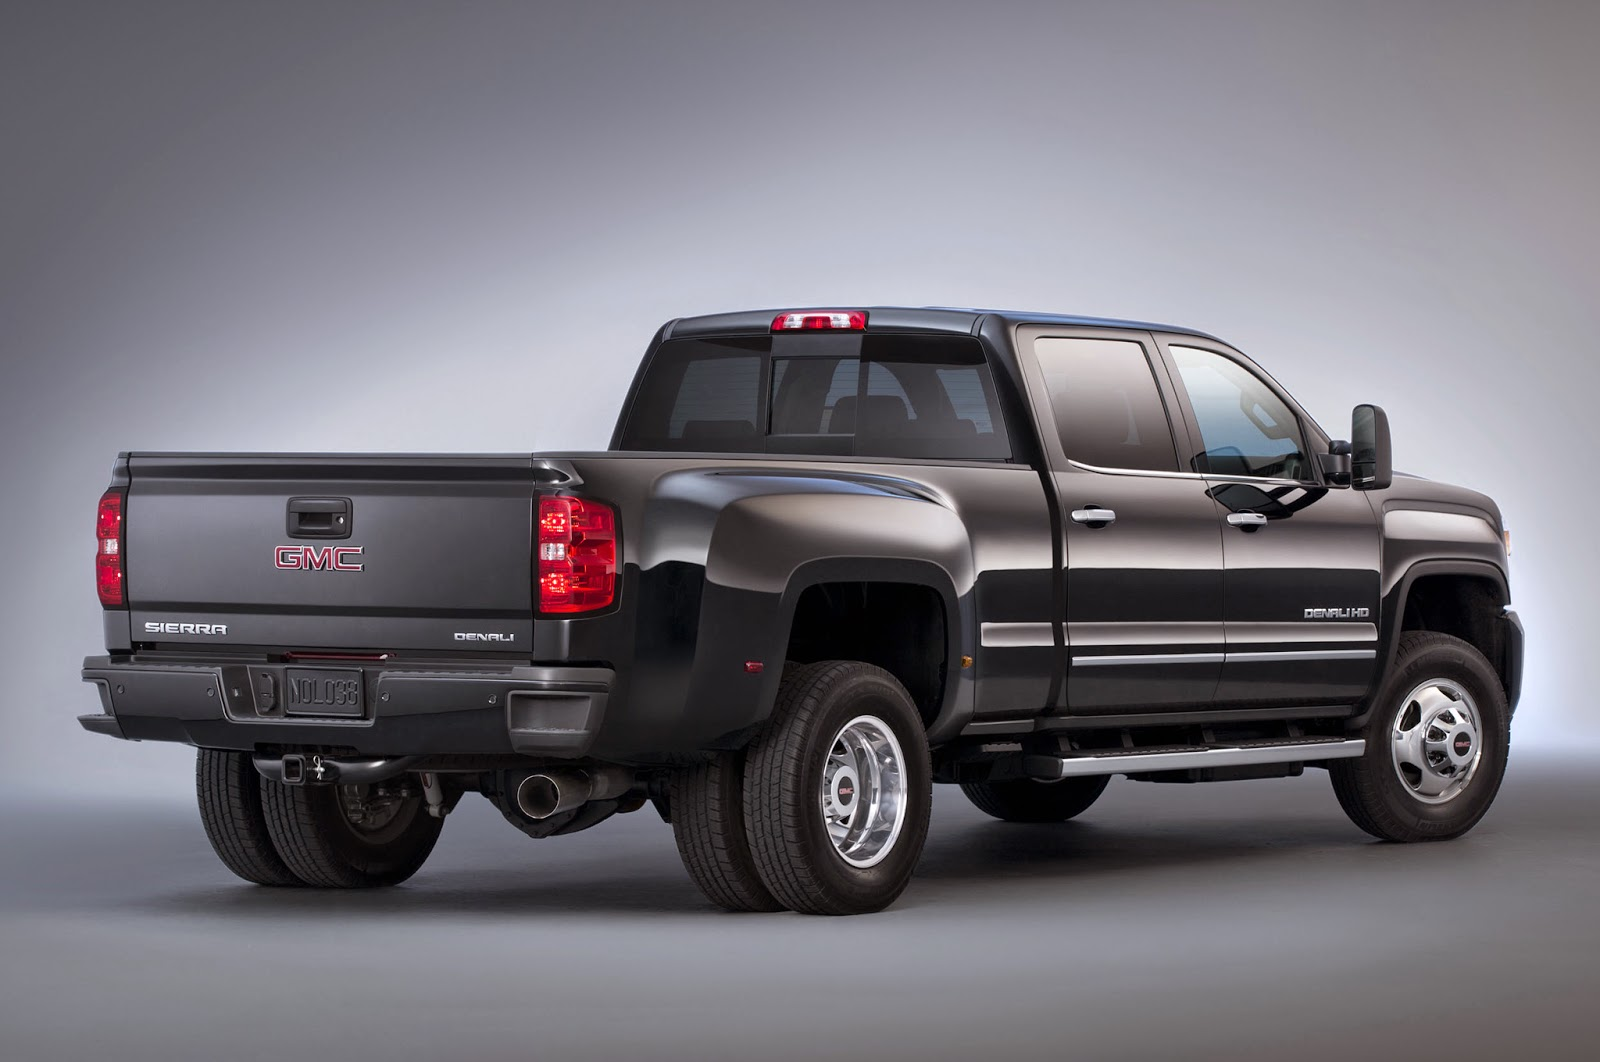 Model 2015 GMC Sierra 3500 HD Wins The Heavy Duty Challenge